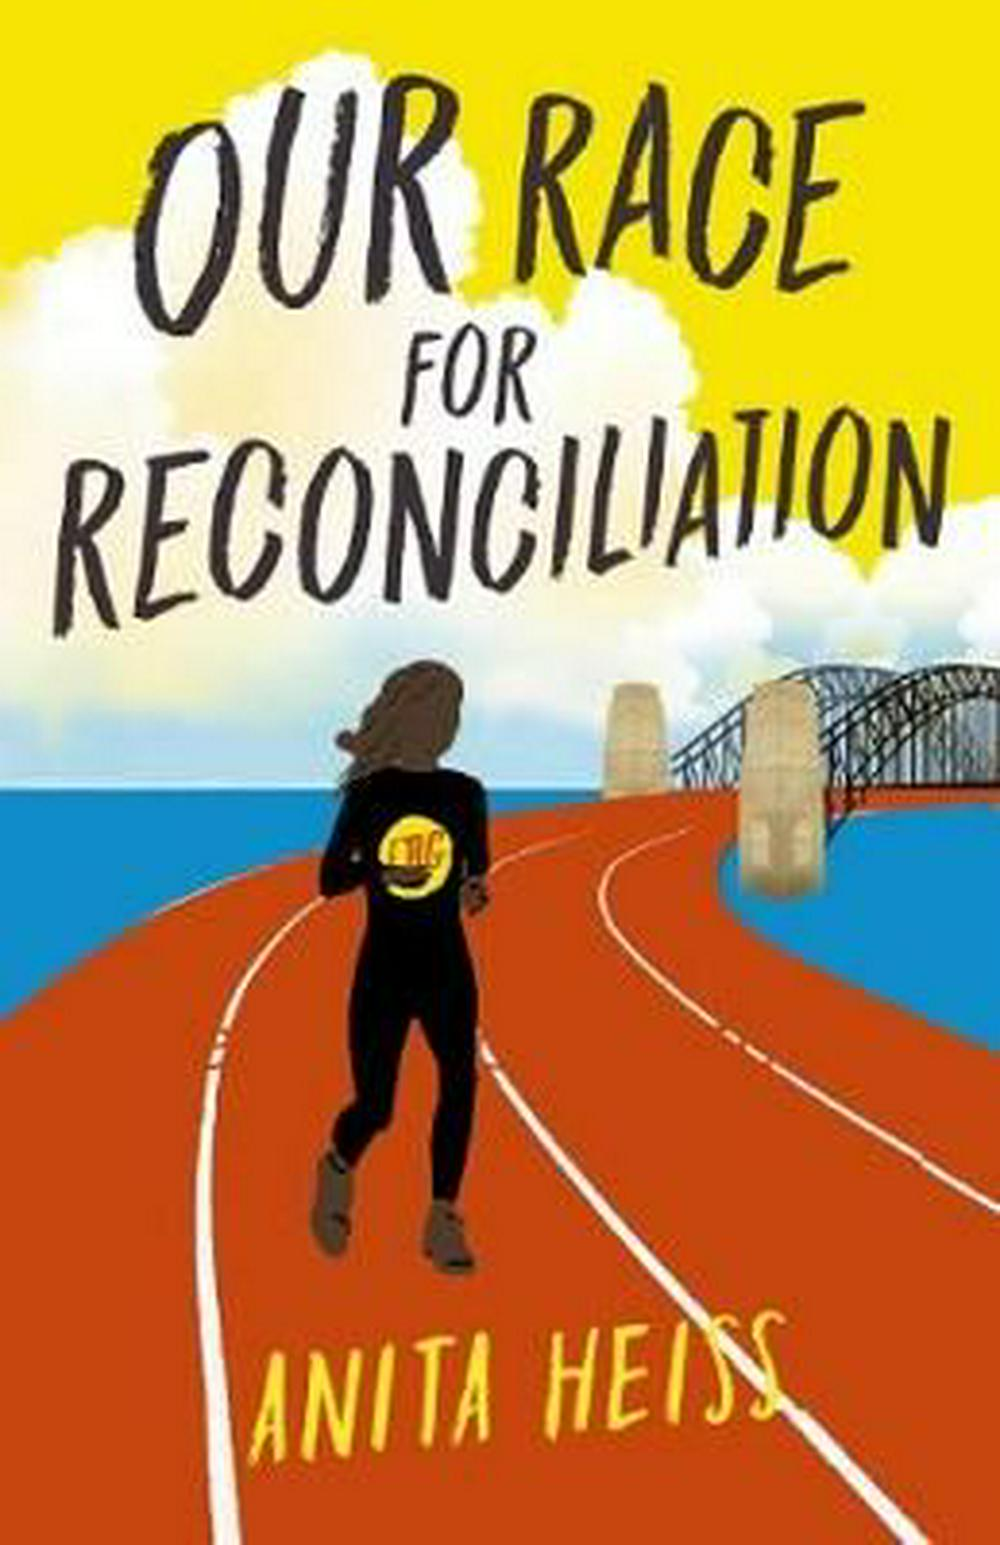 Our Race for Reconciliation by Anita Heiss, ISBN: 9781760276119